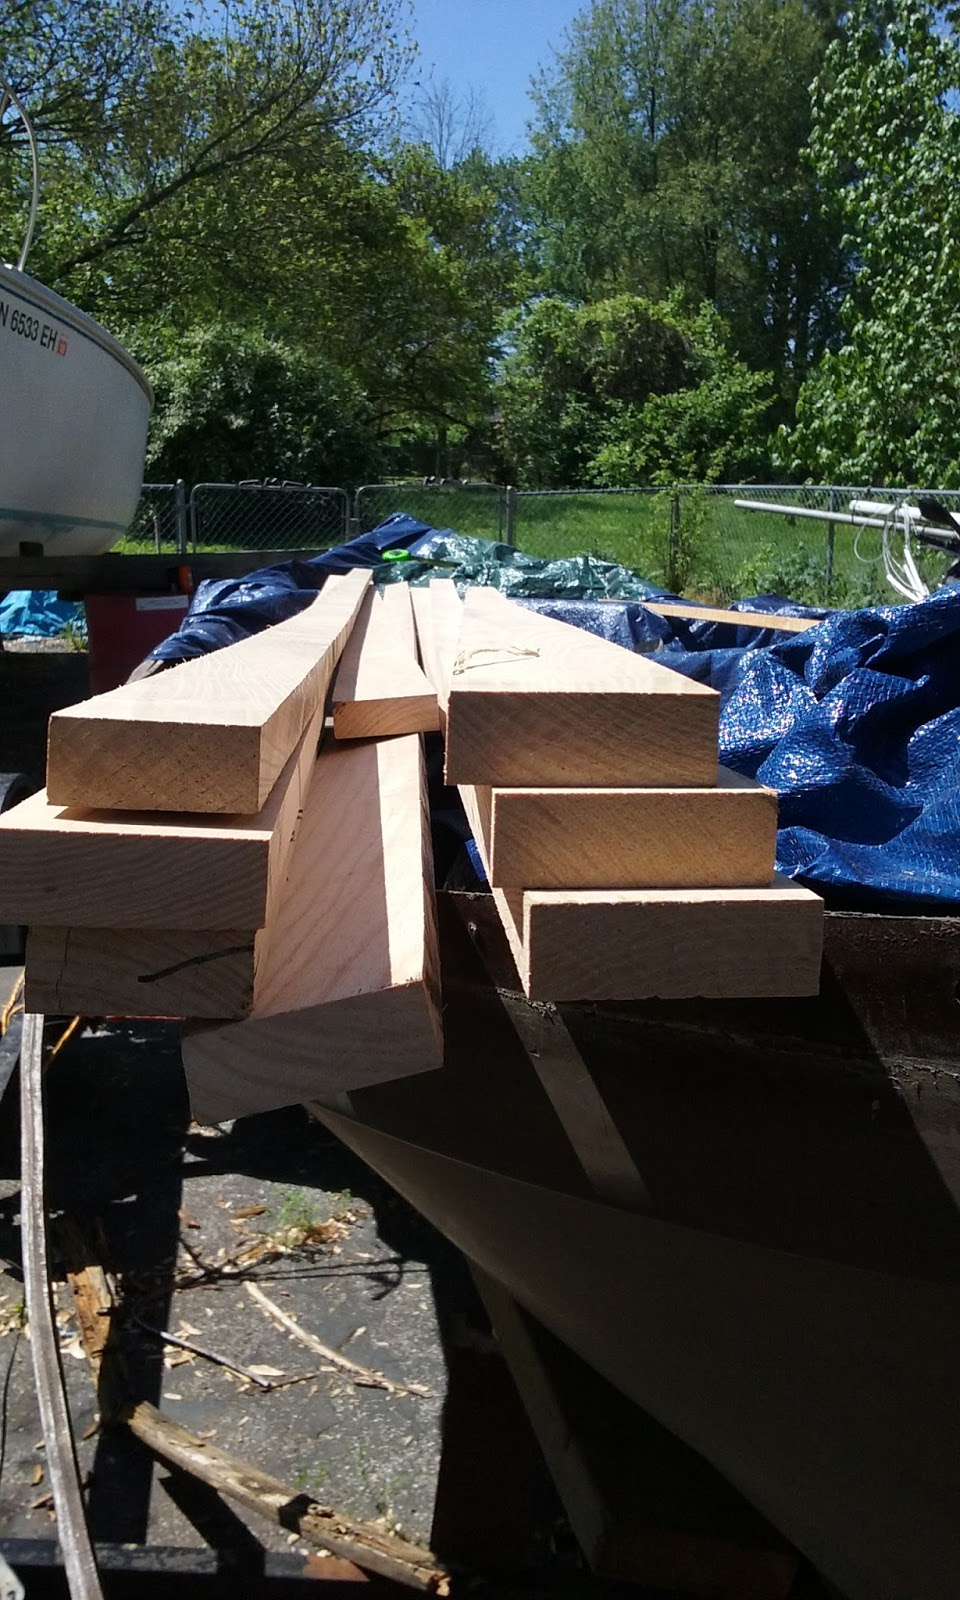 From Norway to the Cumberland: Gunnel/Rub Rail rebuild